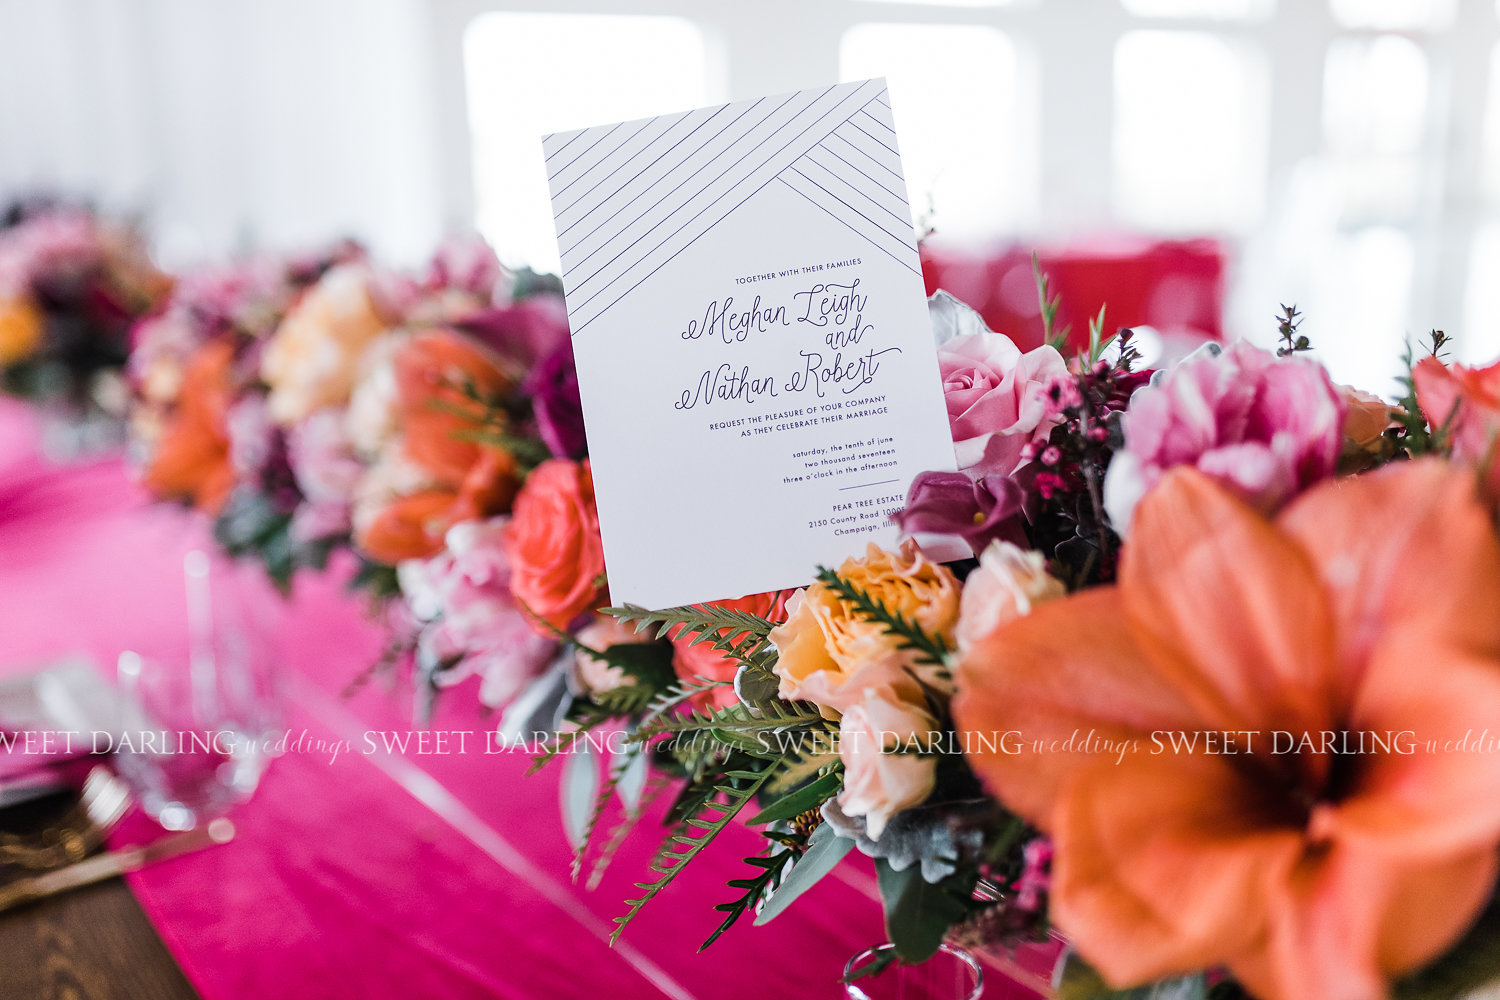 How do you know you are working with some outstanding creatives? When the stationary designer, Dash/wood,  picks up the small linear details in the couture bridal gown and used it as inspiration for the invitation suite.